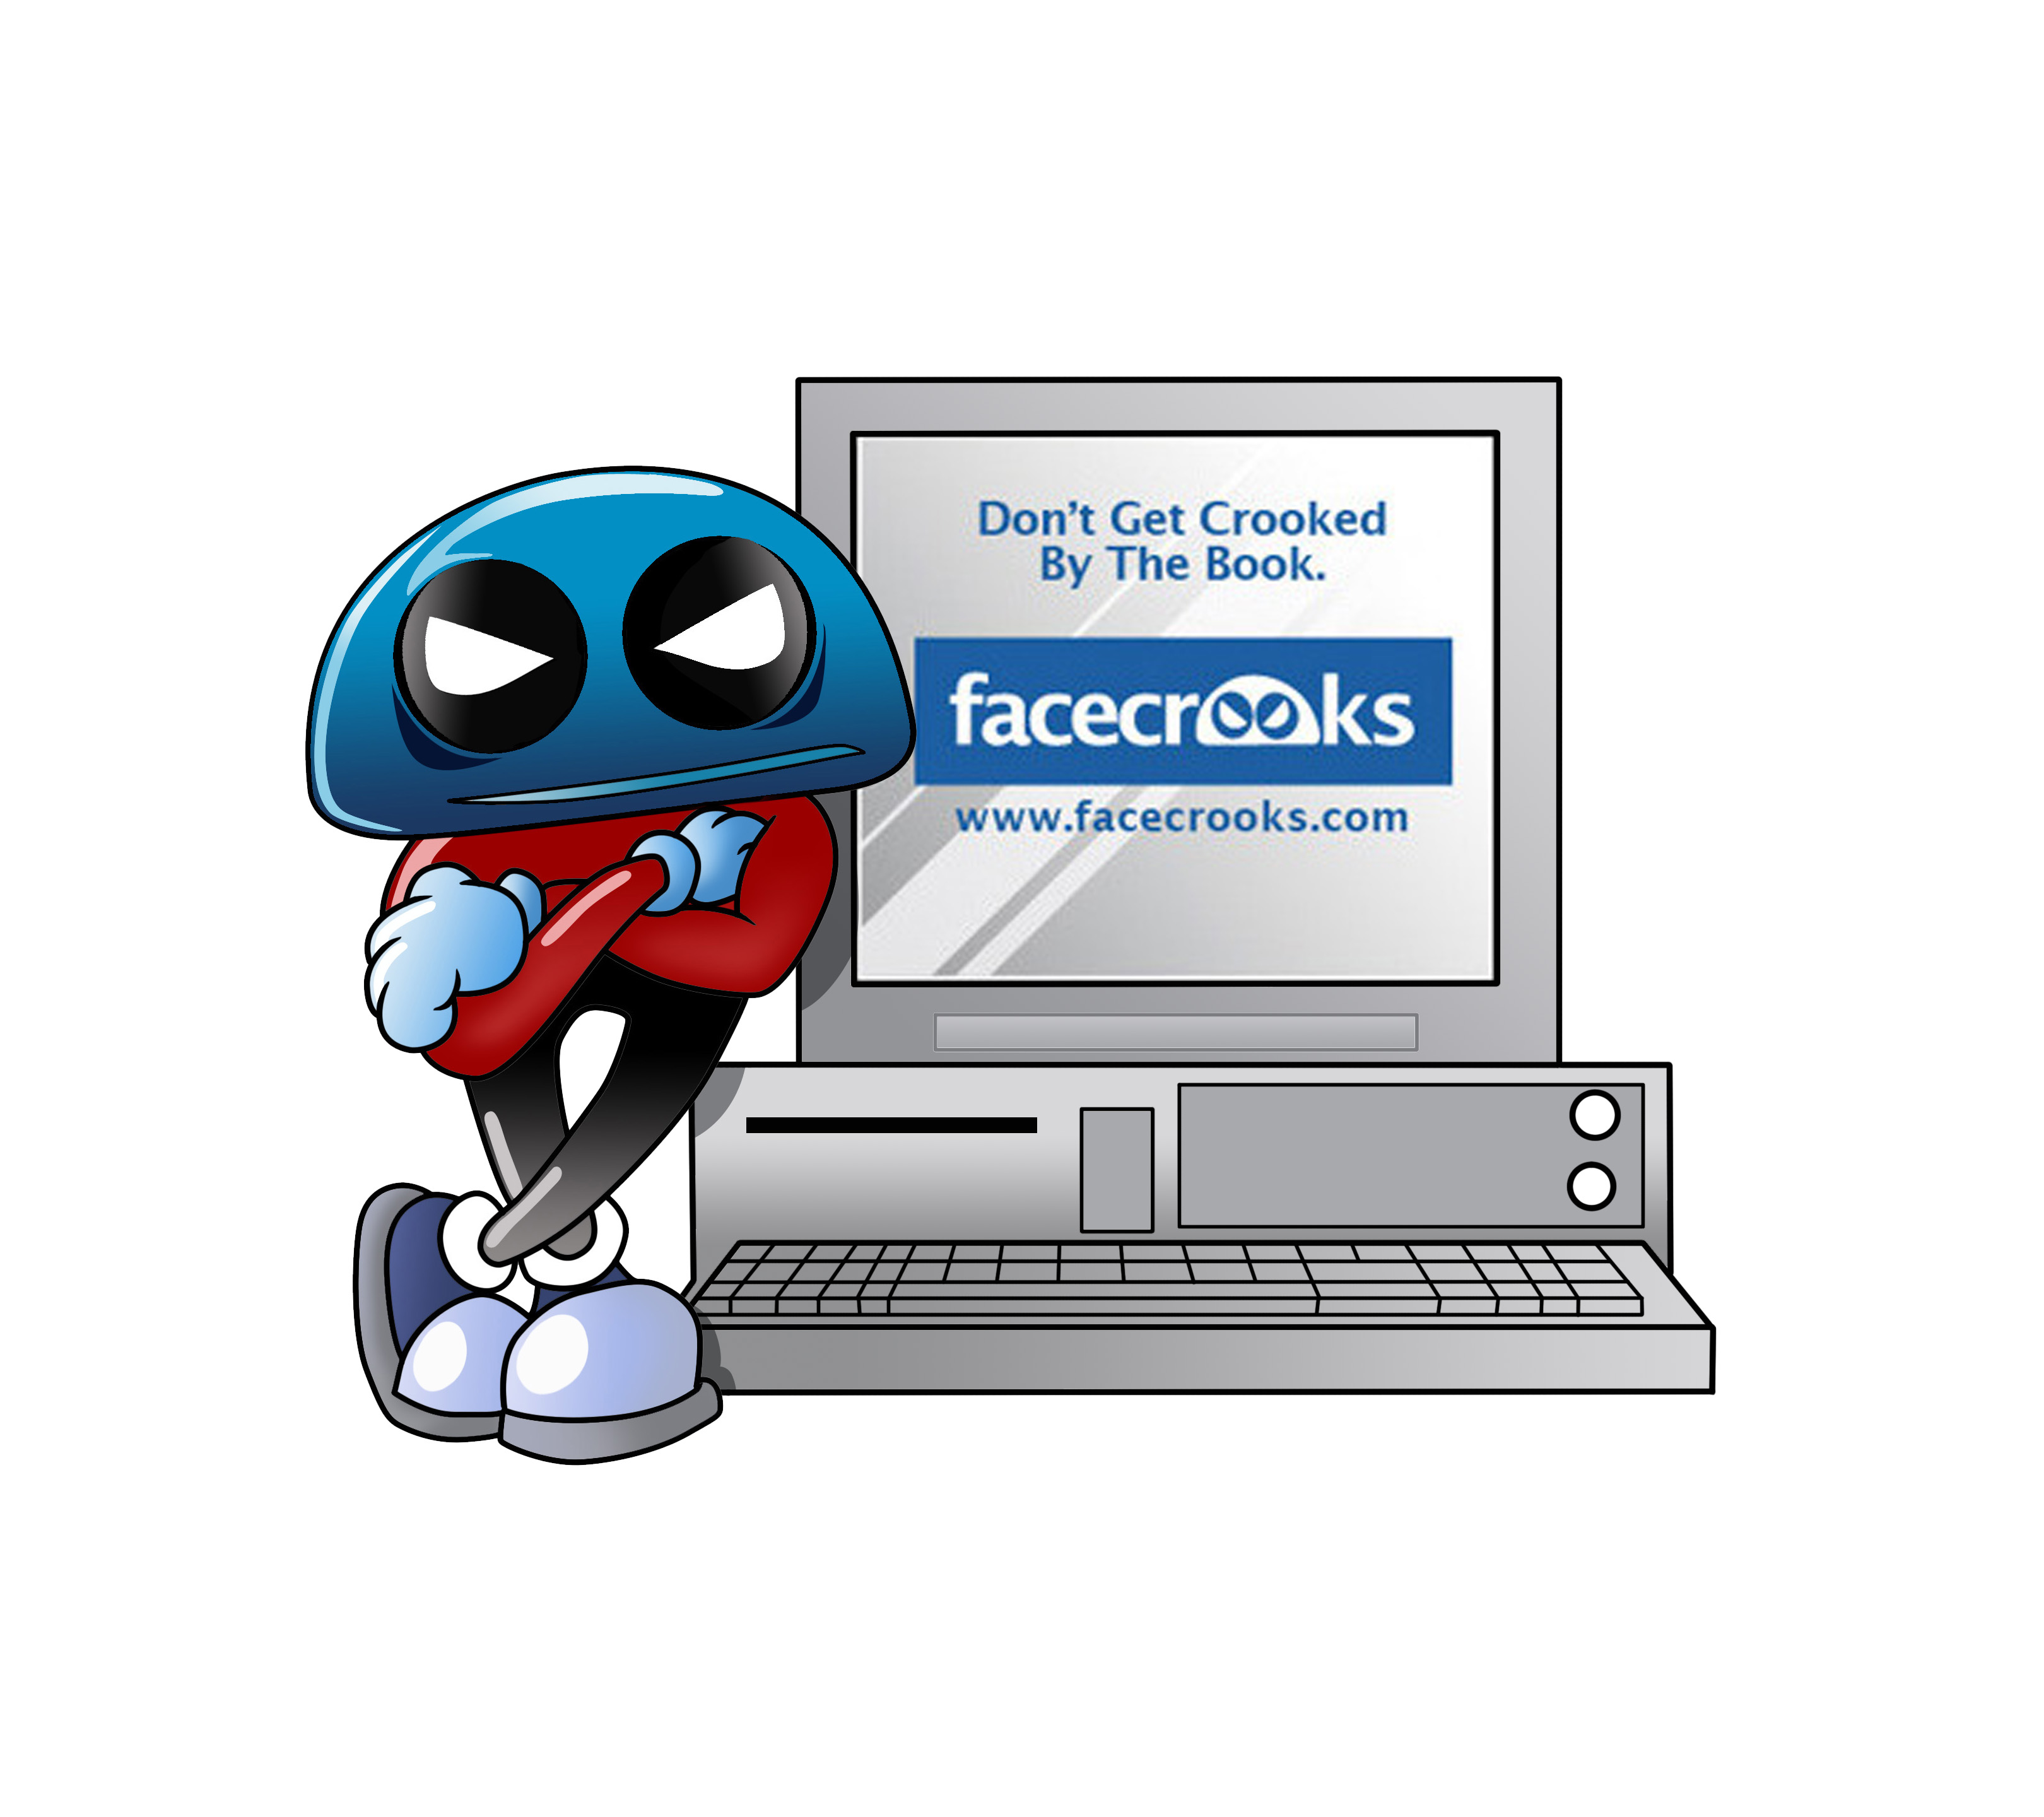 facecrooks_cartoon_computer